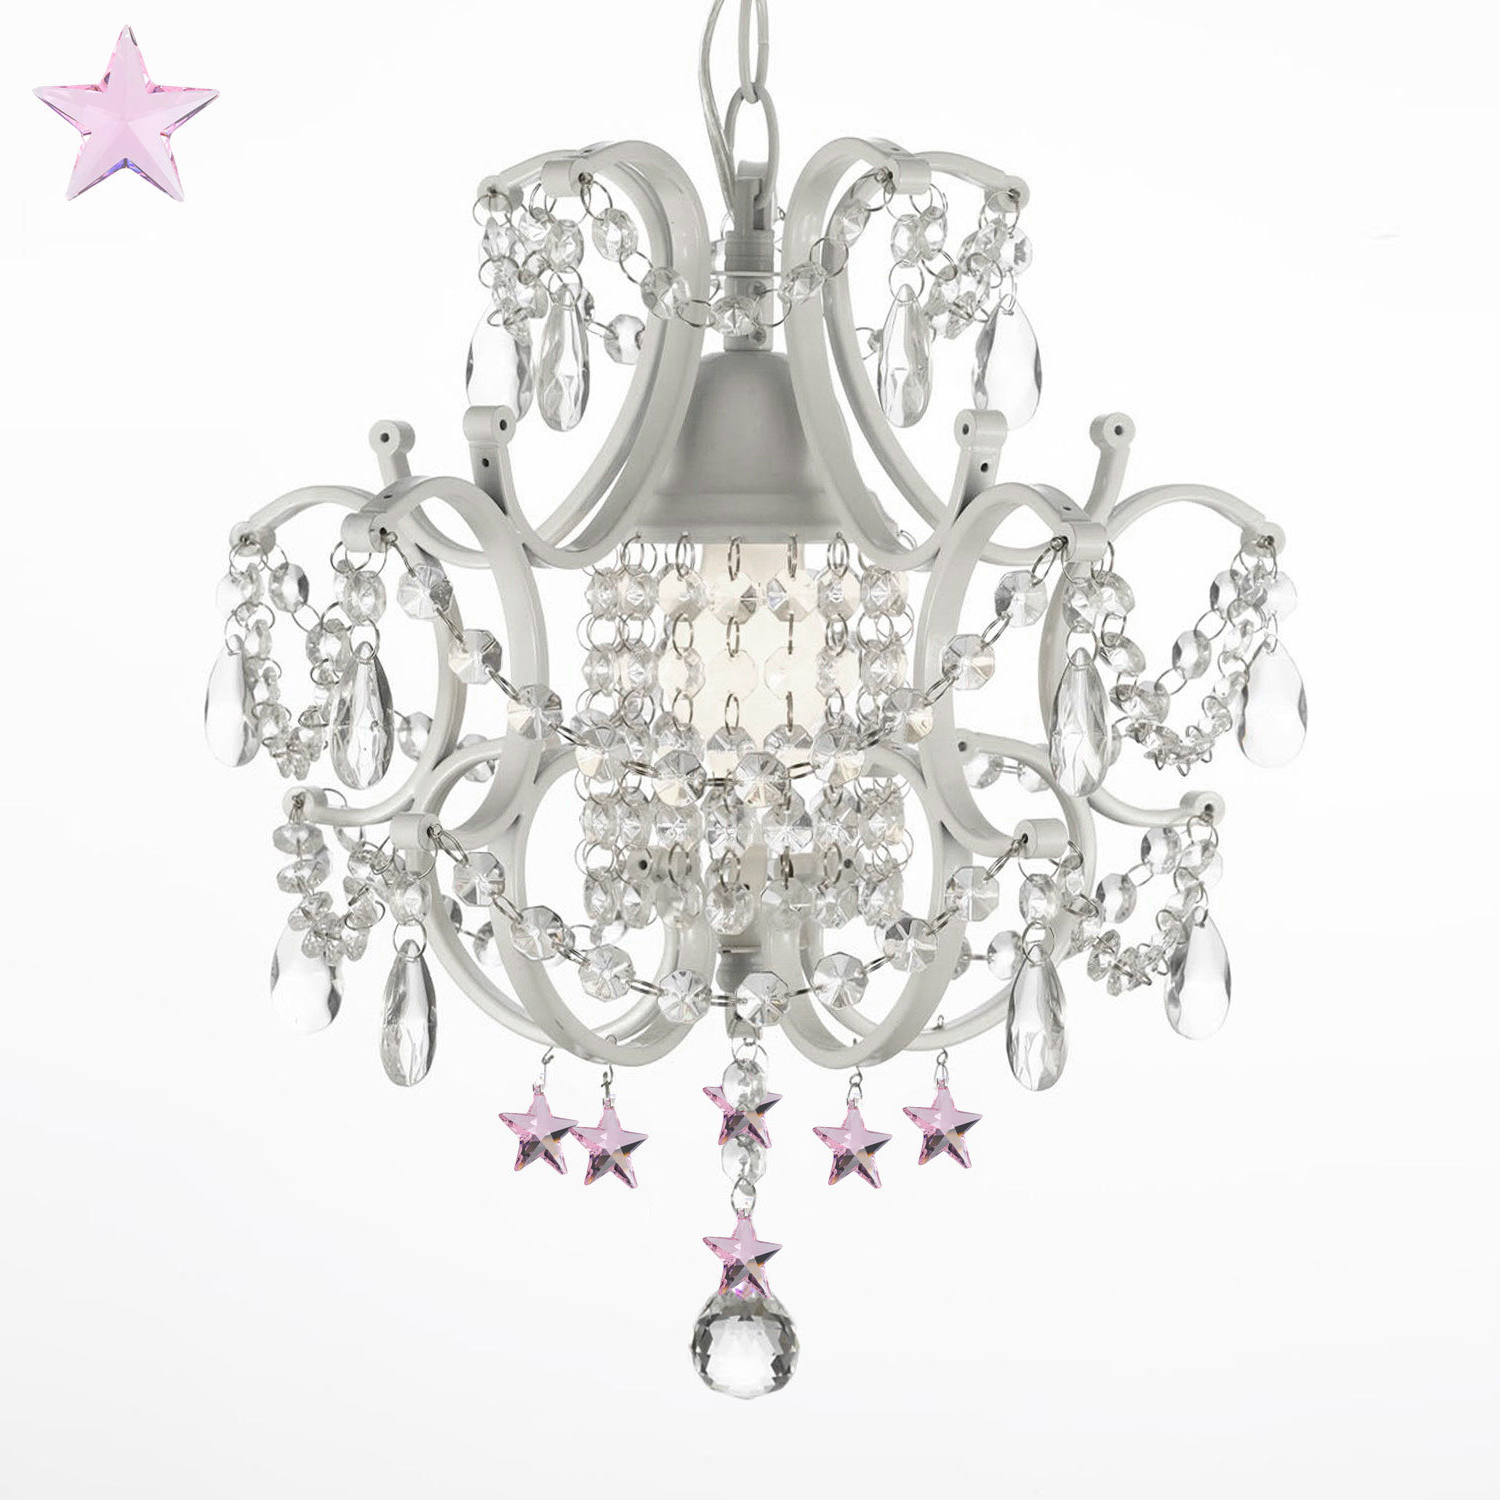 Evon 1-Light Led Crystal Pendant for Well-liked Dilley 1-Light Unique / Statement Geometric Pendants